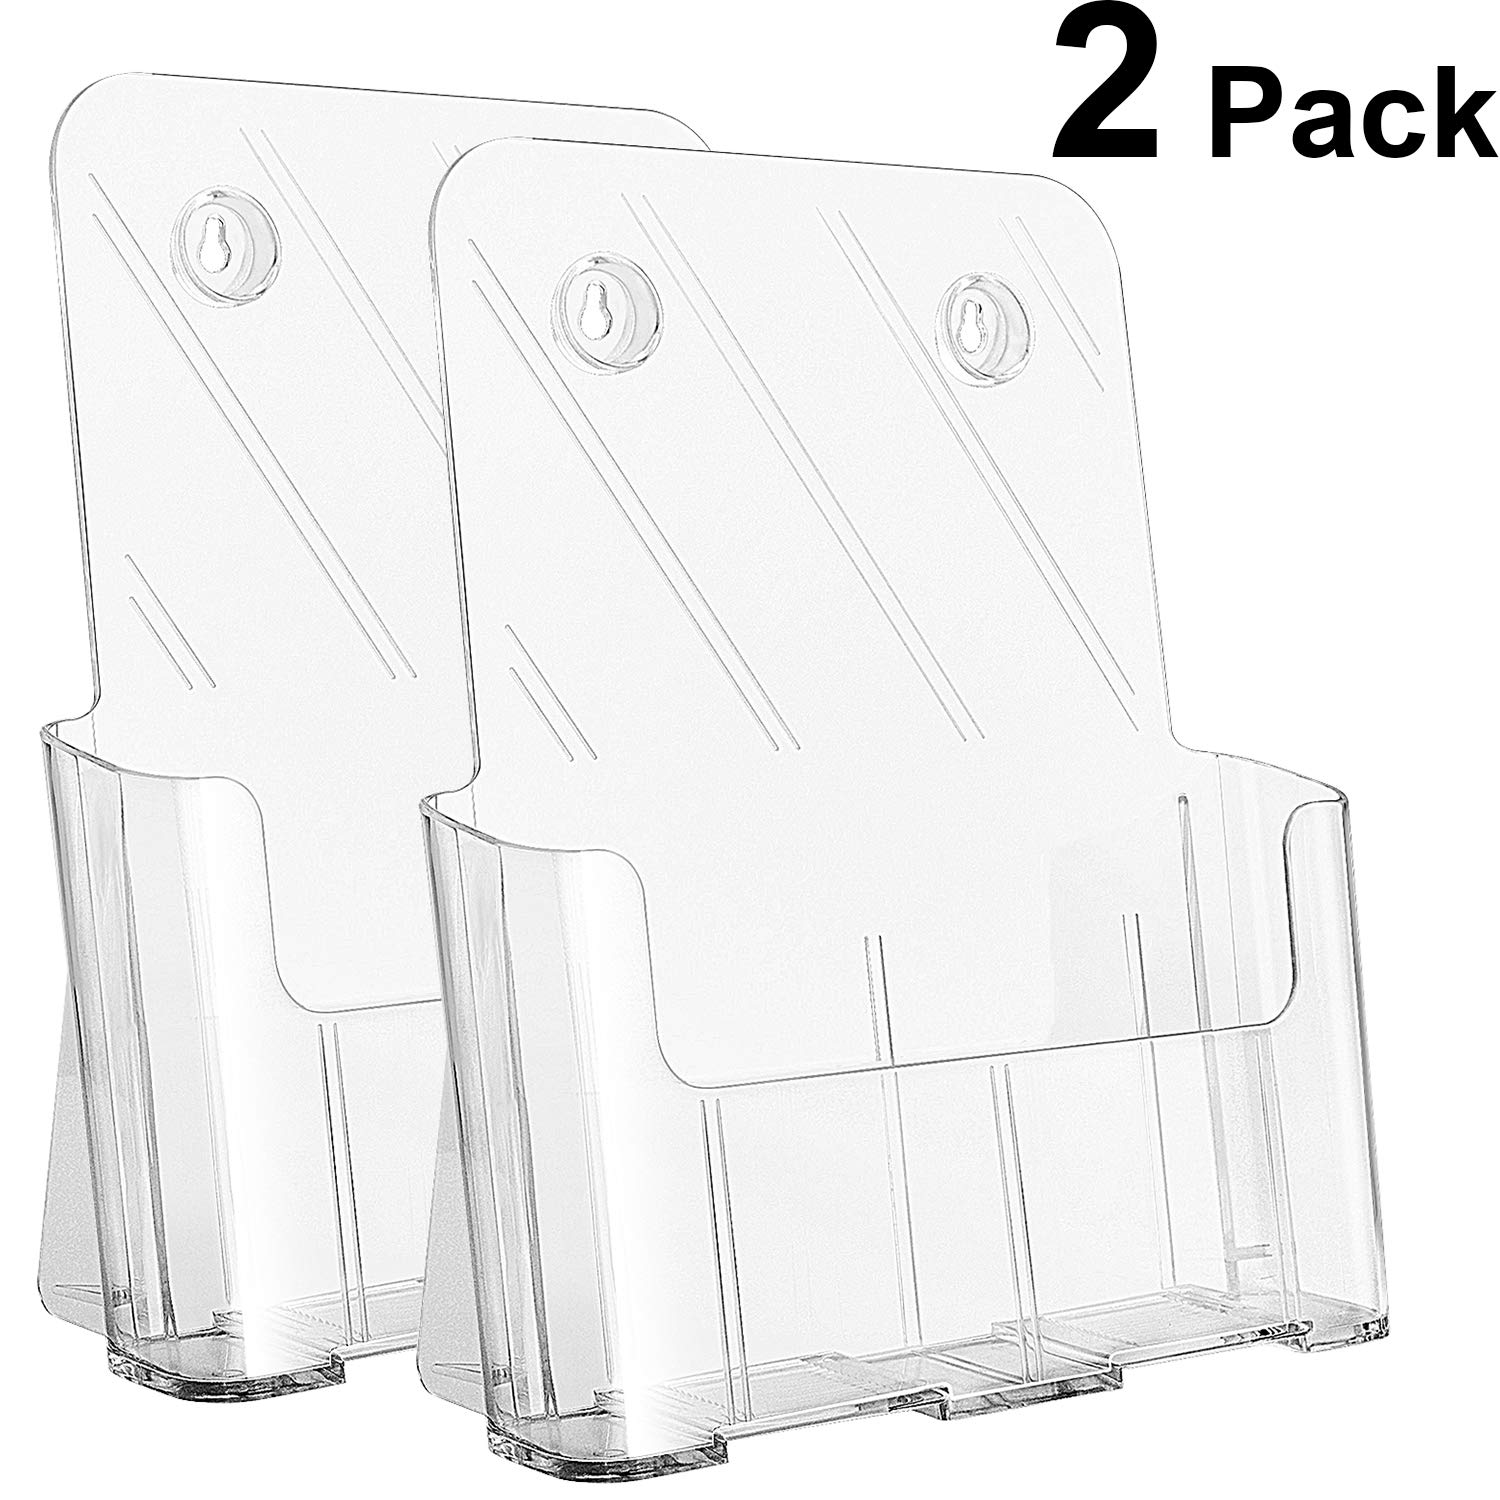 Ktrio Acrylic Brochure Holder 8.5 x 11 inches Plastic Acrylic Literature Holders Clear Flyer Holder Rack Card Holder, Magazine, Pamphlet, Booklet Display Stand Trifold Holder Desk or Wall Mount 2 Pack by KTRIO